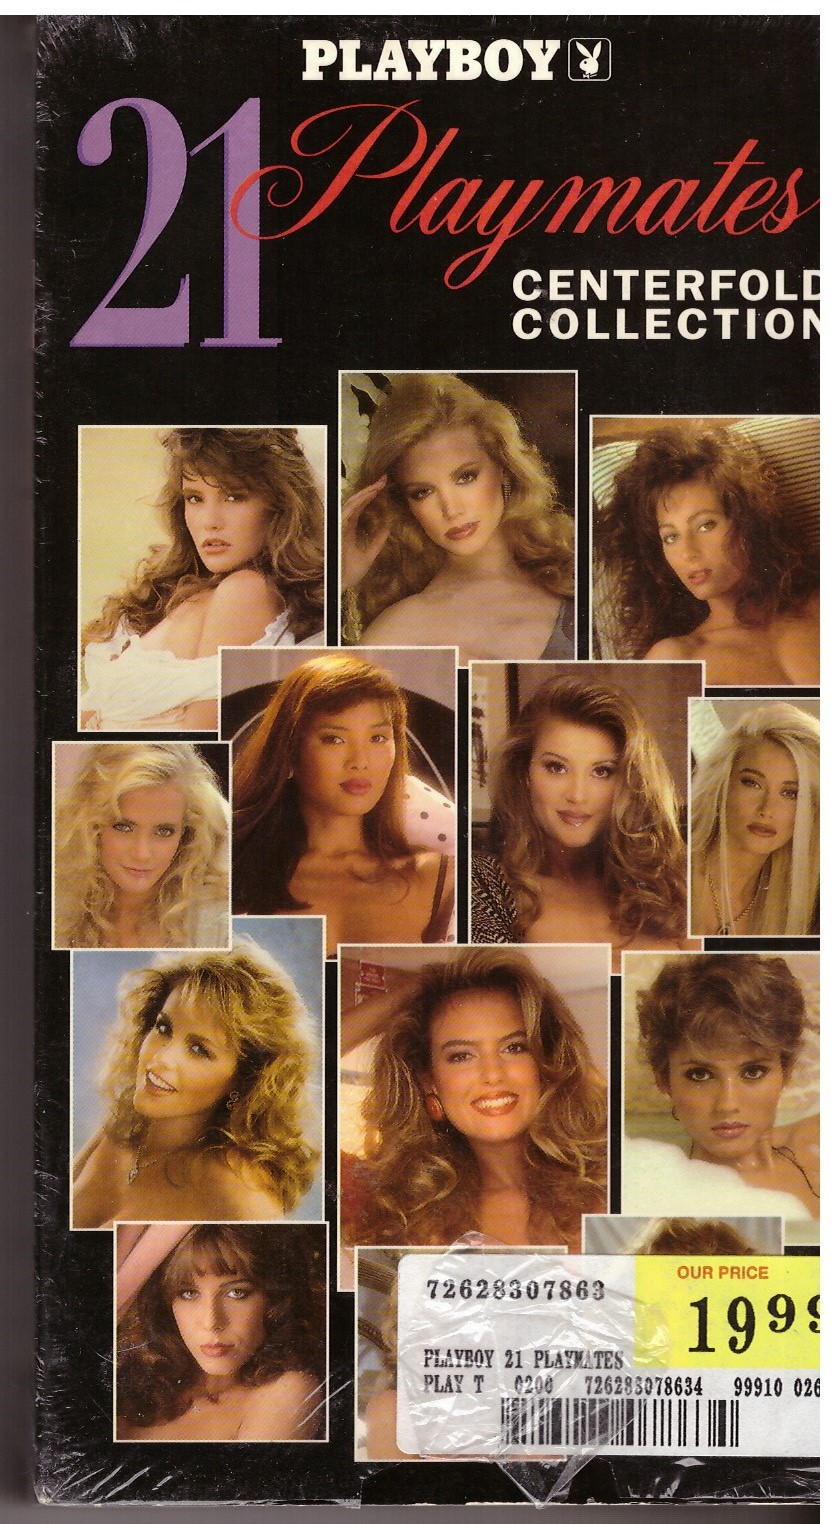 21 PLAYMATES (VHS) USA